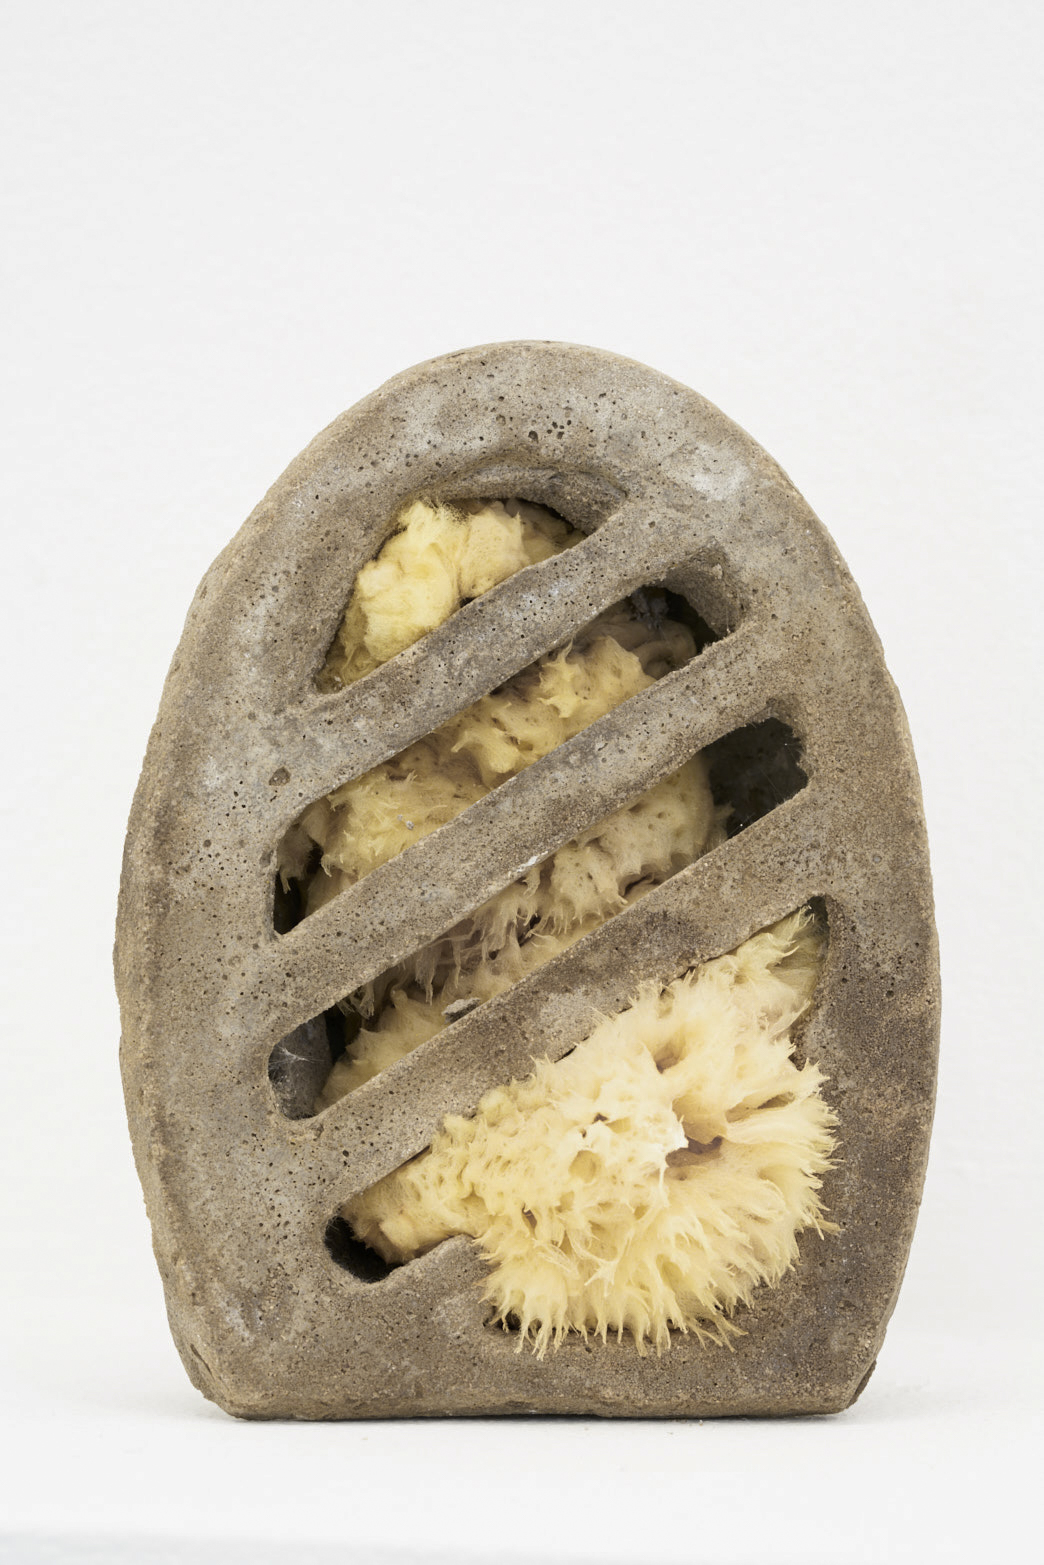 Victoria Adam, Wholemeal breeze (sponge, wine, vinegar), 2018, Cement, sponge, vinegar photo: Original&theCopy